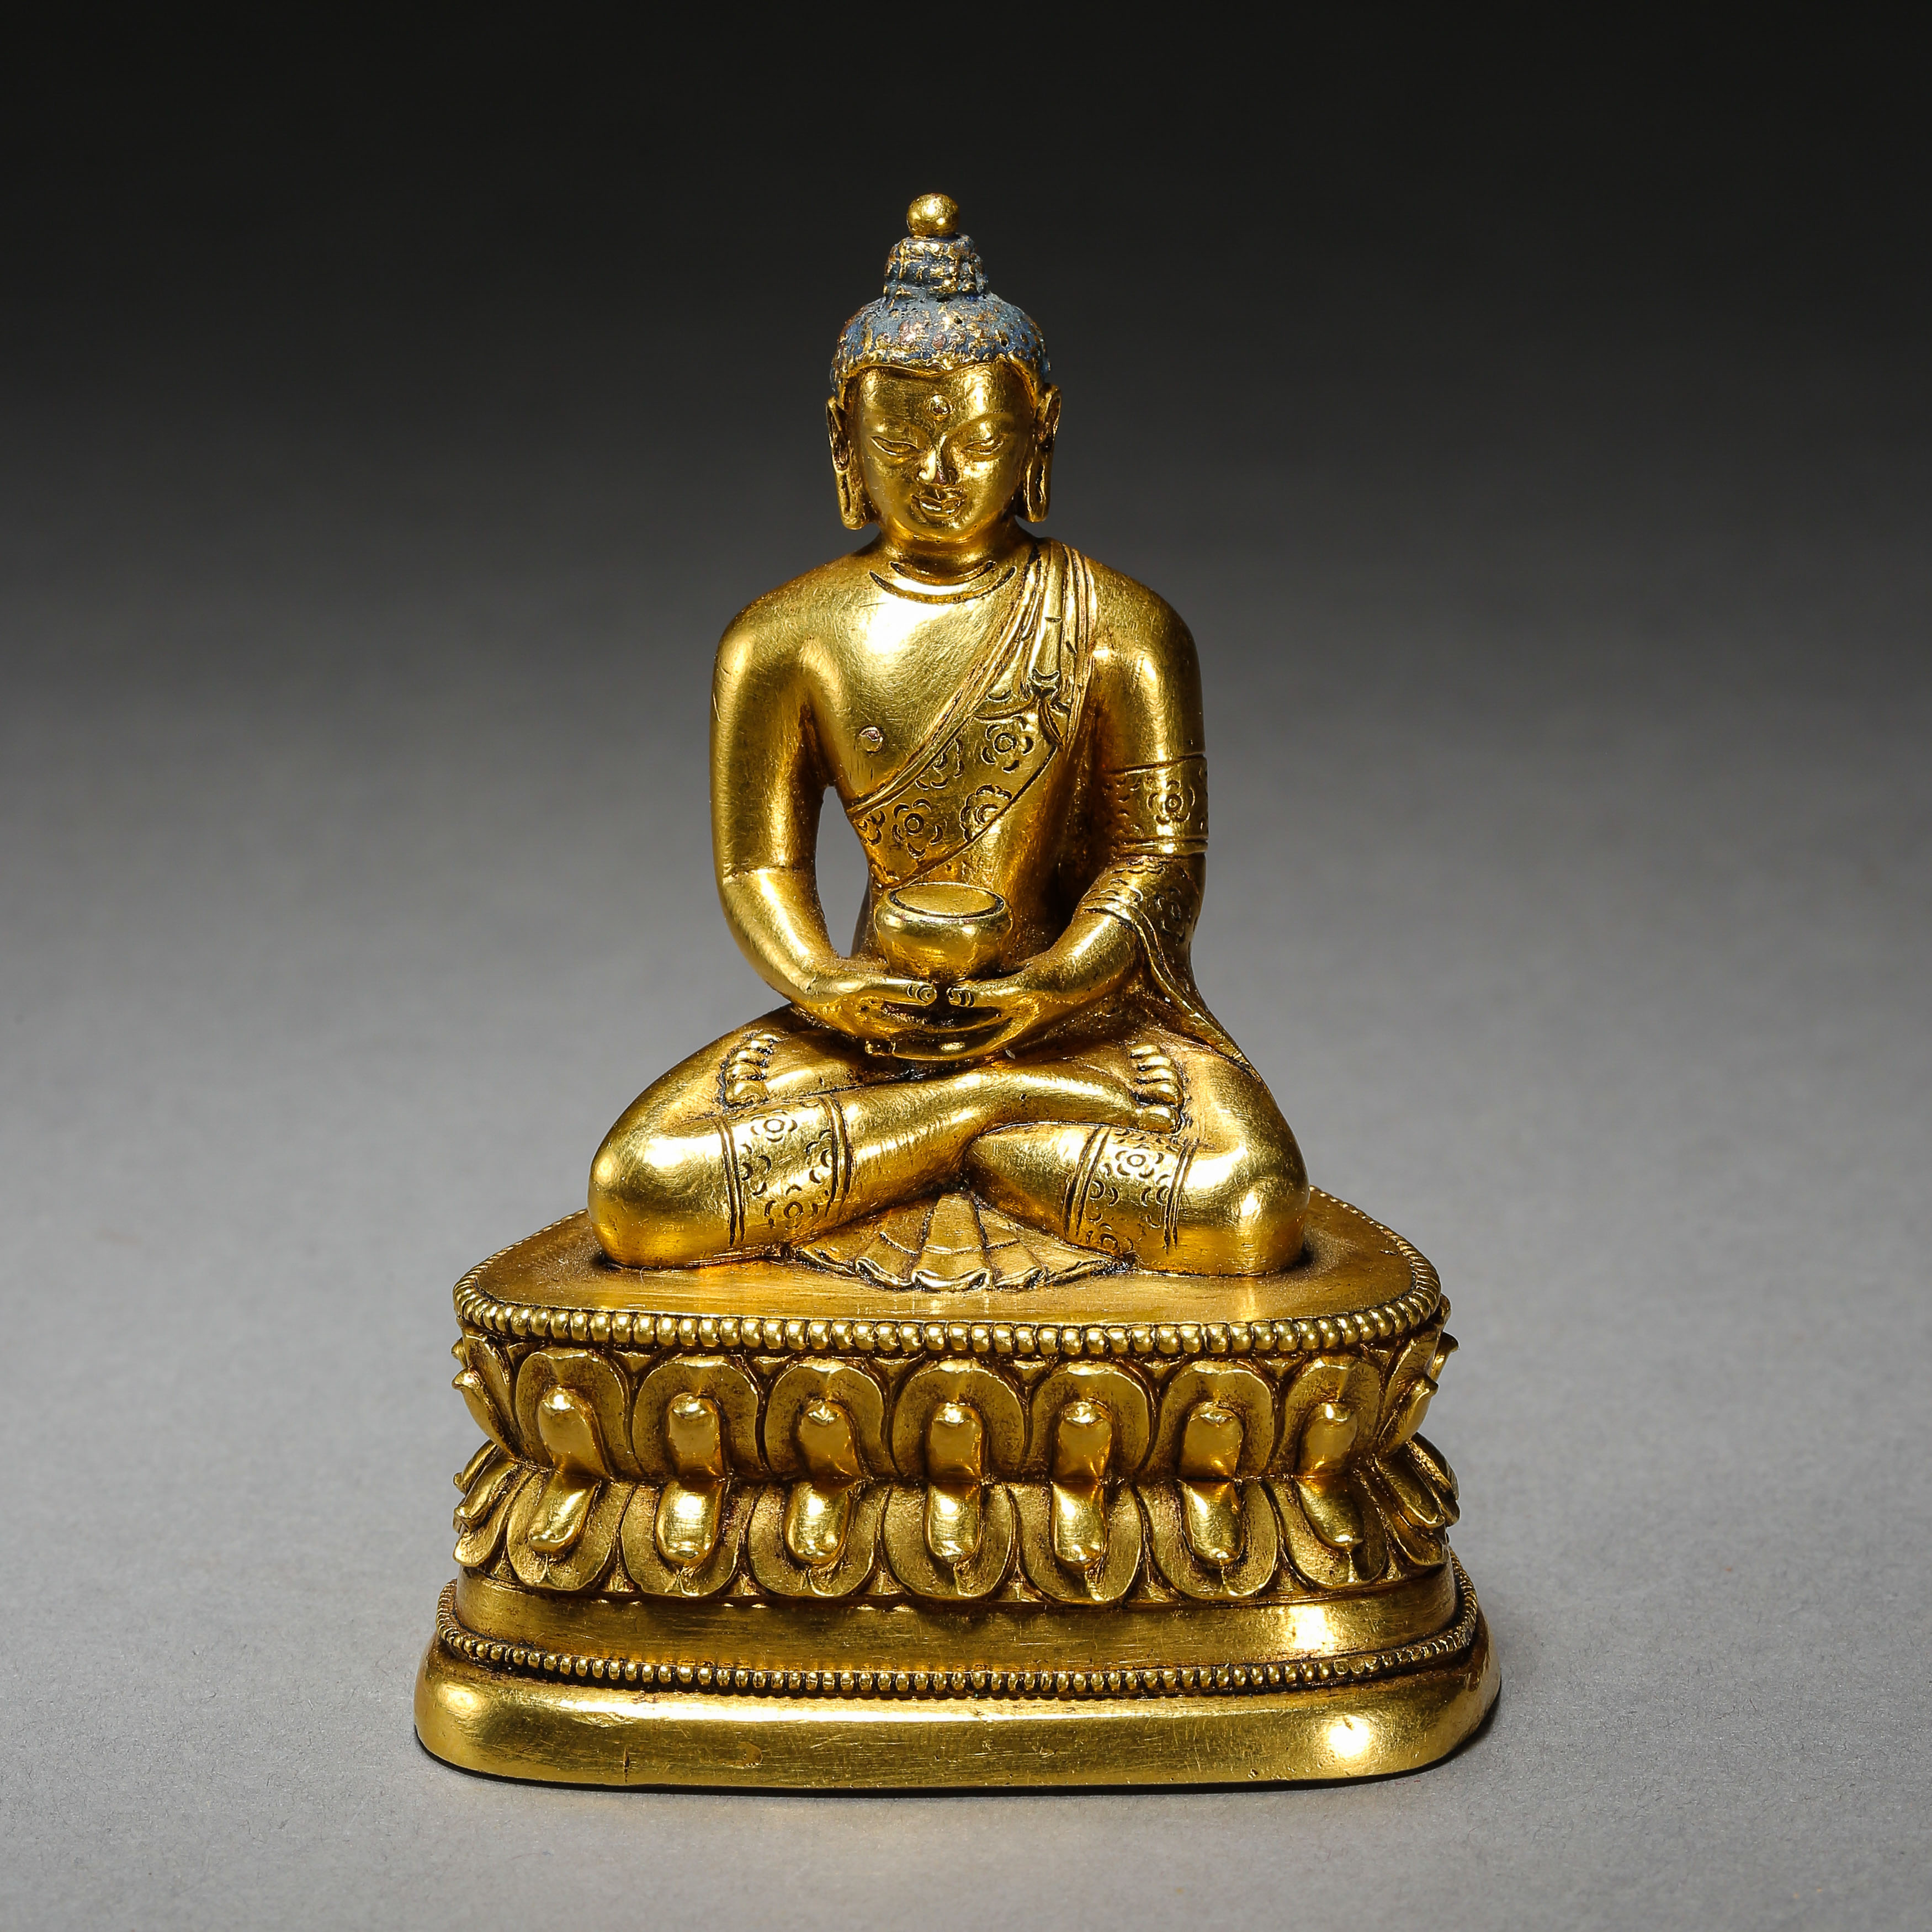 SEATED GILT BRONZE BUDDHA, QING DYNASTY, CHINA - Image 9 of 11